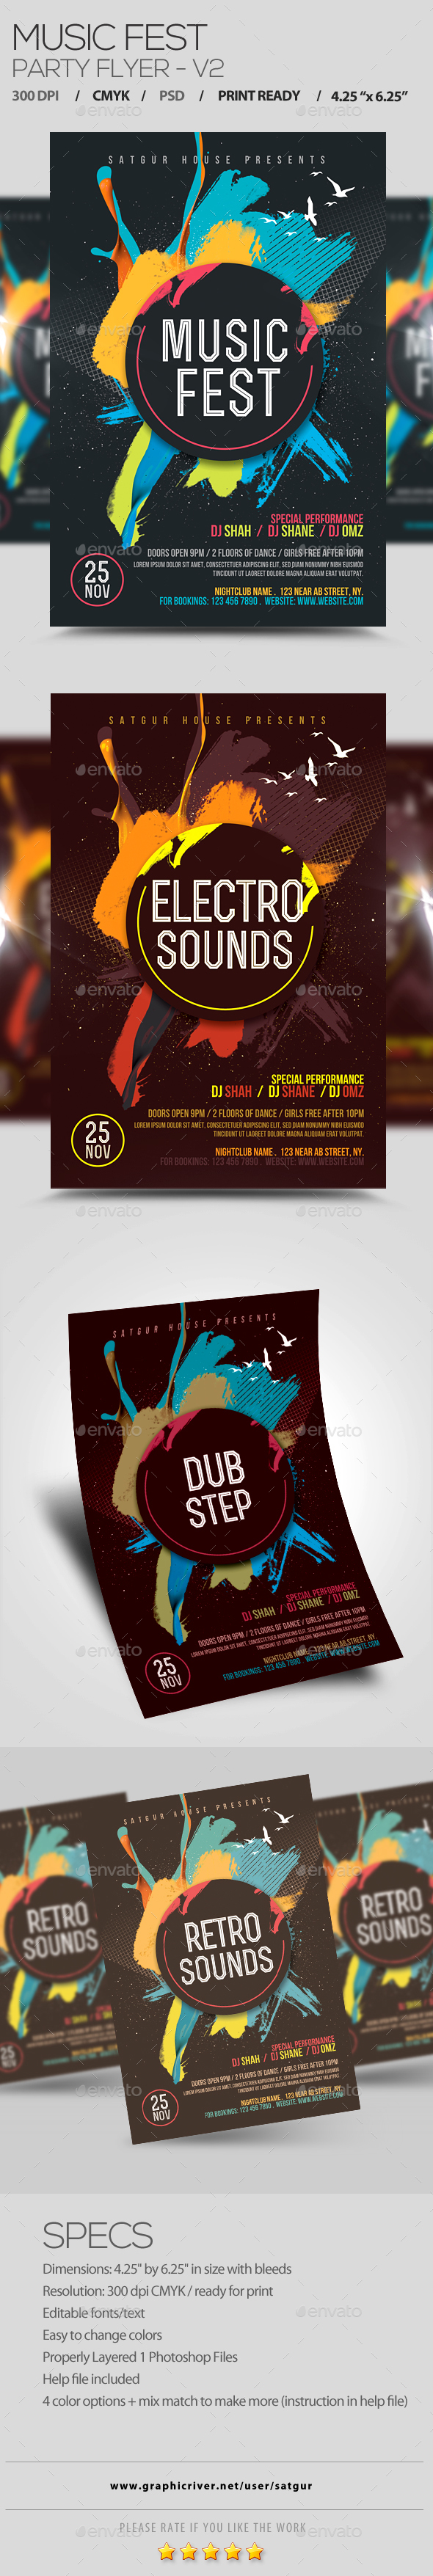 Music Fest Flyer V2 - Clubs & Parties Events